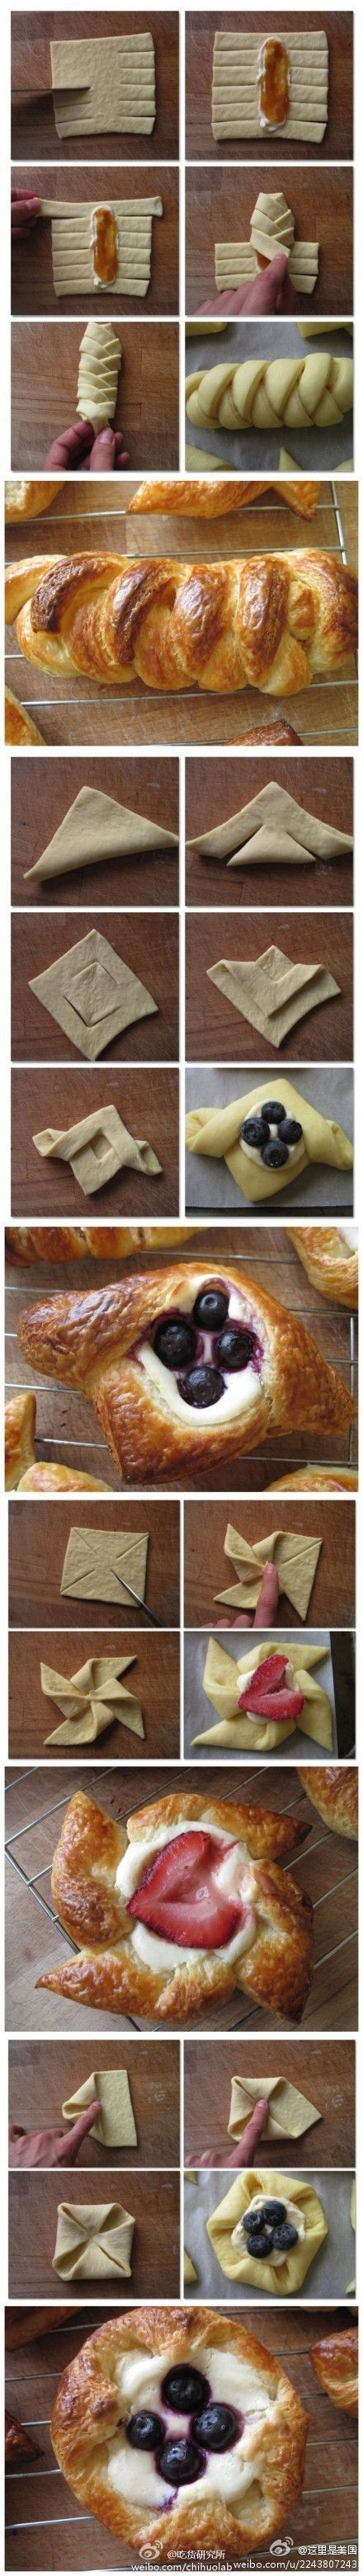 Jam & sweetened cream cheese or Marscapone Danishes.  Use ready made puff pastry for a super easy breakfast treat. Bake and serve.